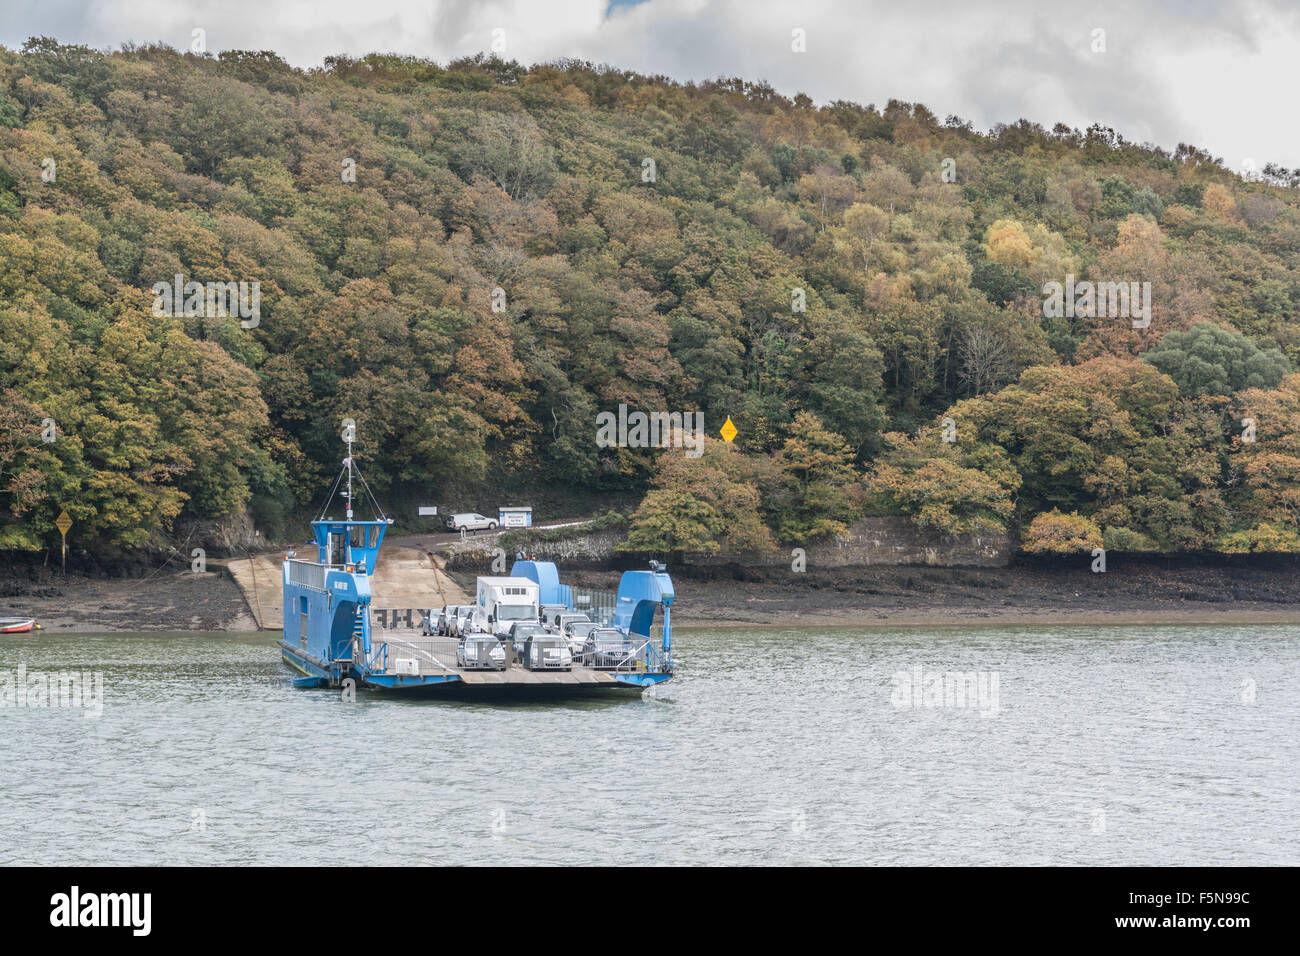 King Harry Ferry crossing the River Fal in Cornwall - Stock Image